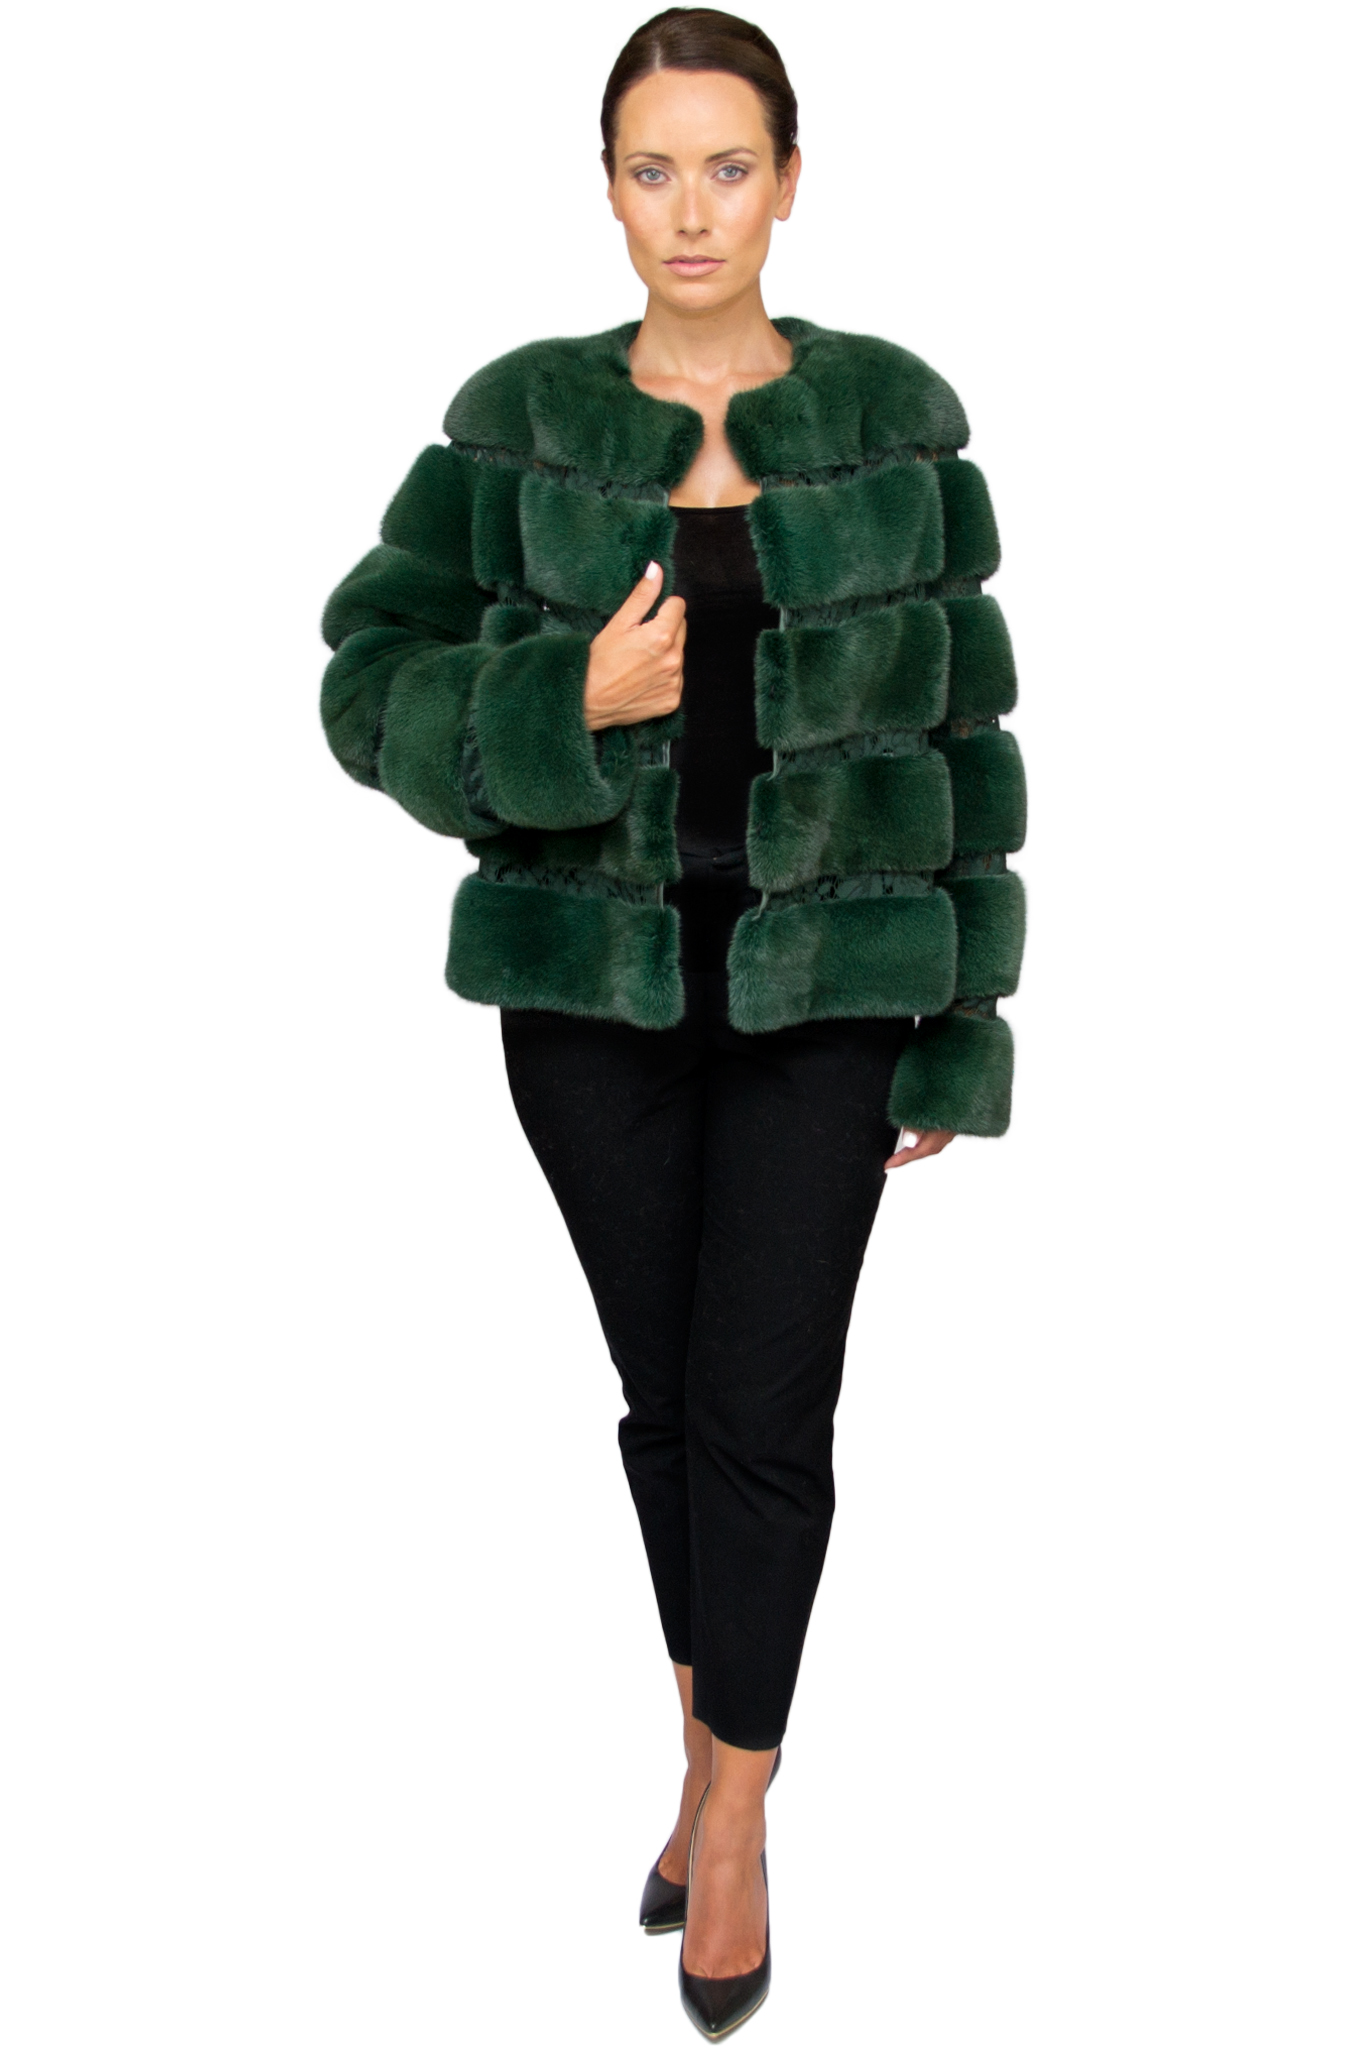 Eve - Lace and Mink Coat - Front 2.jpg